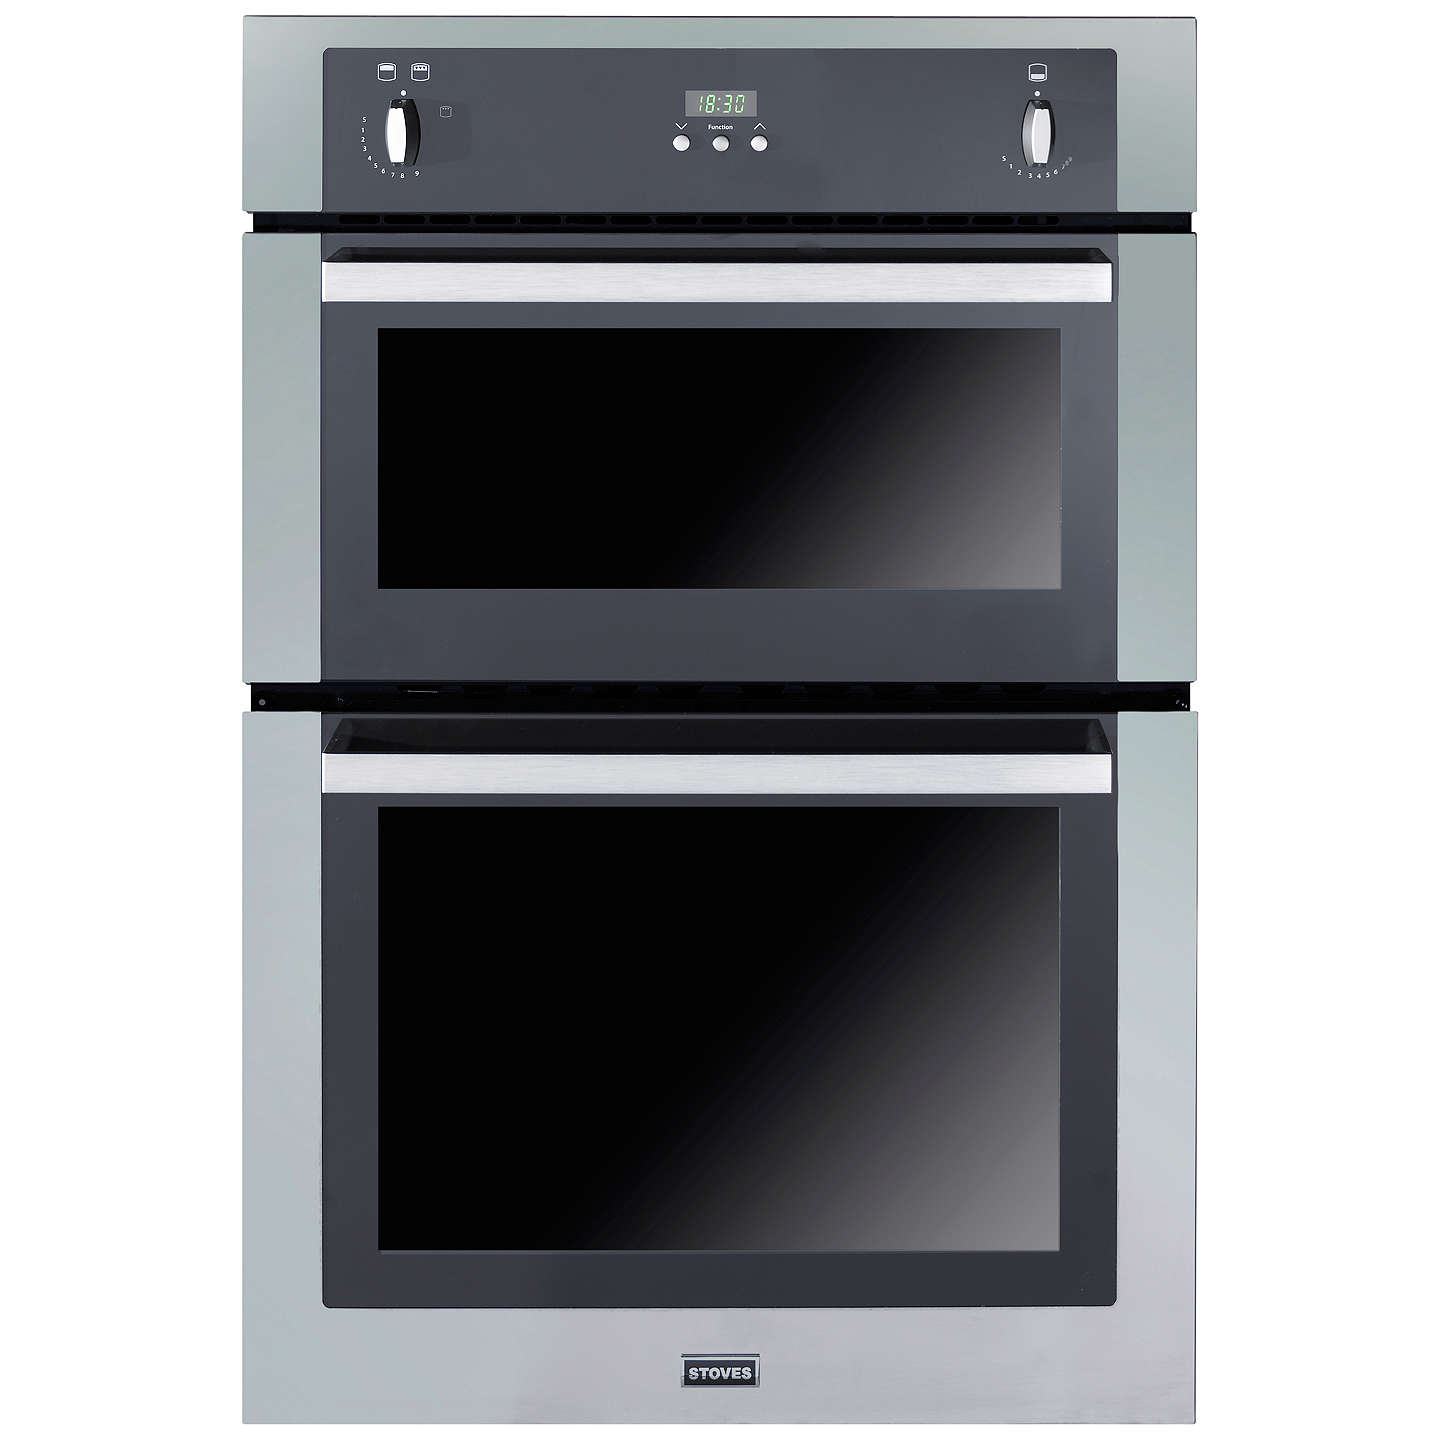 Stoves Sgb900ps Double Gas Oven Stainless Steel At John Lewis